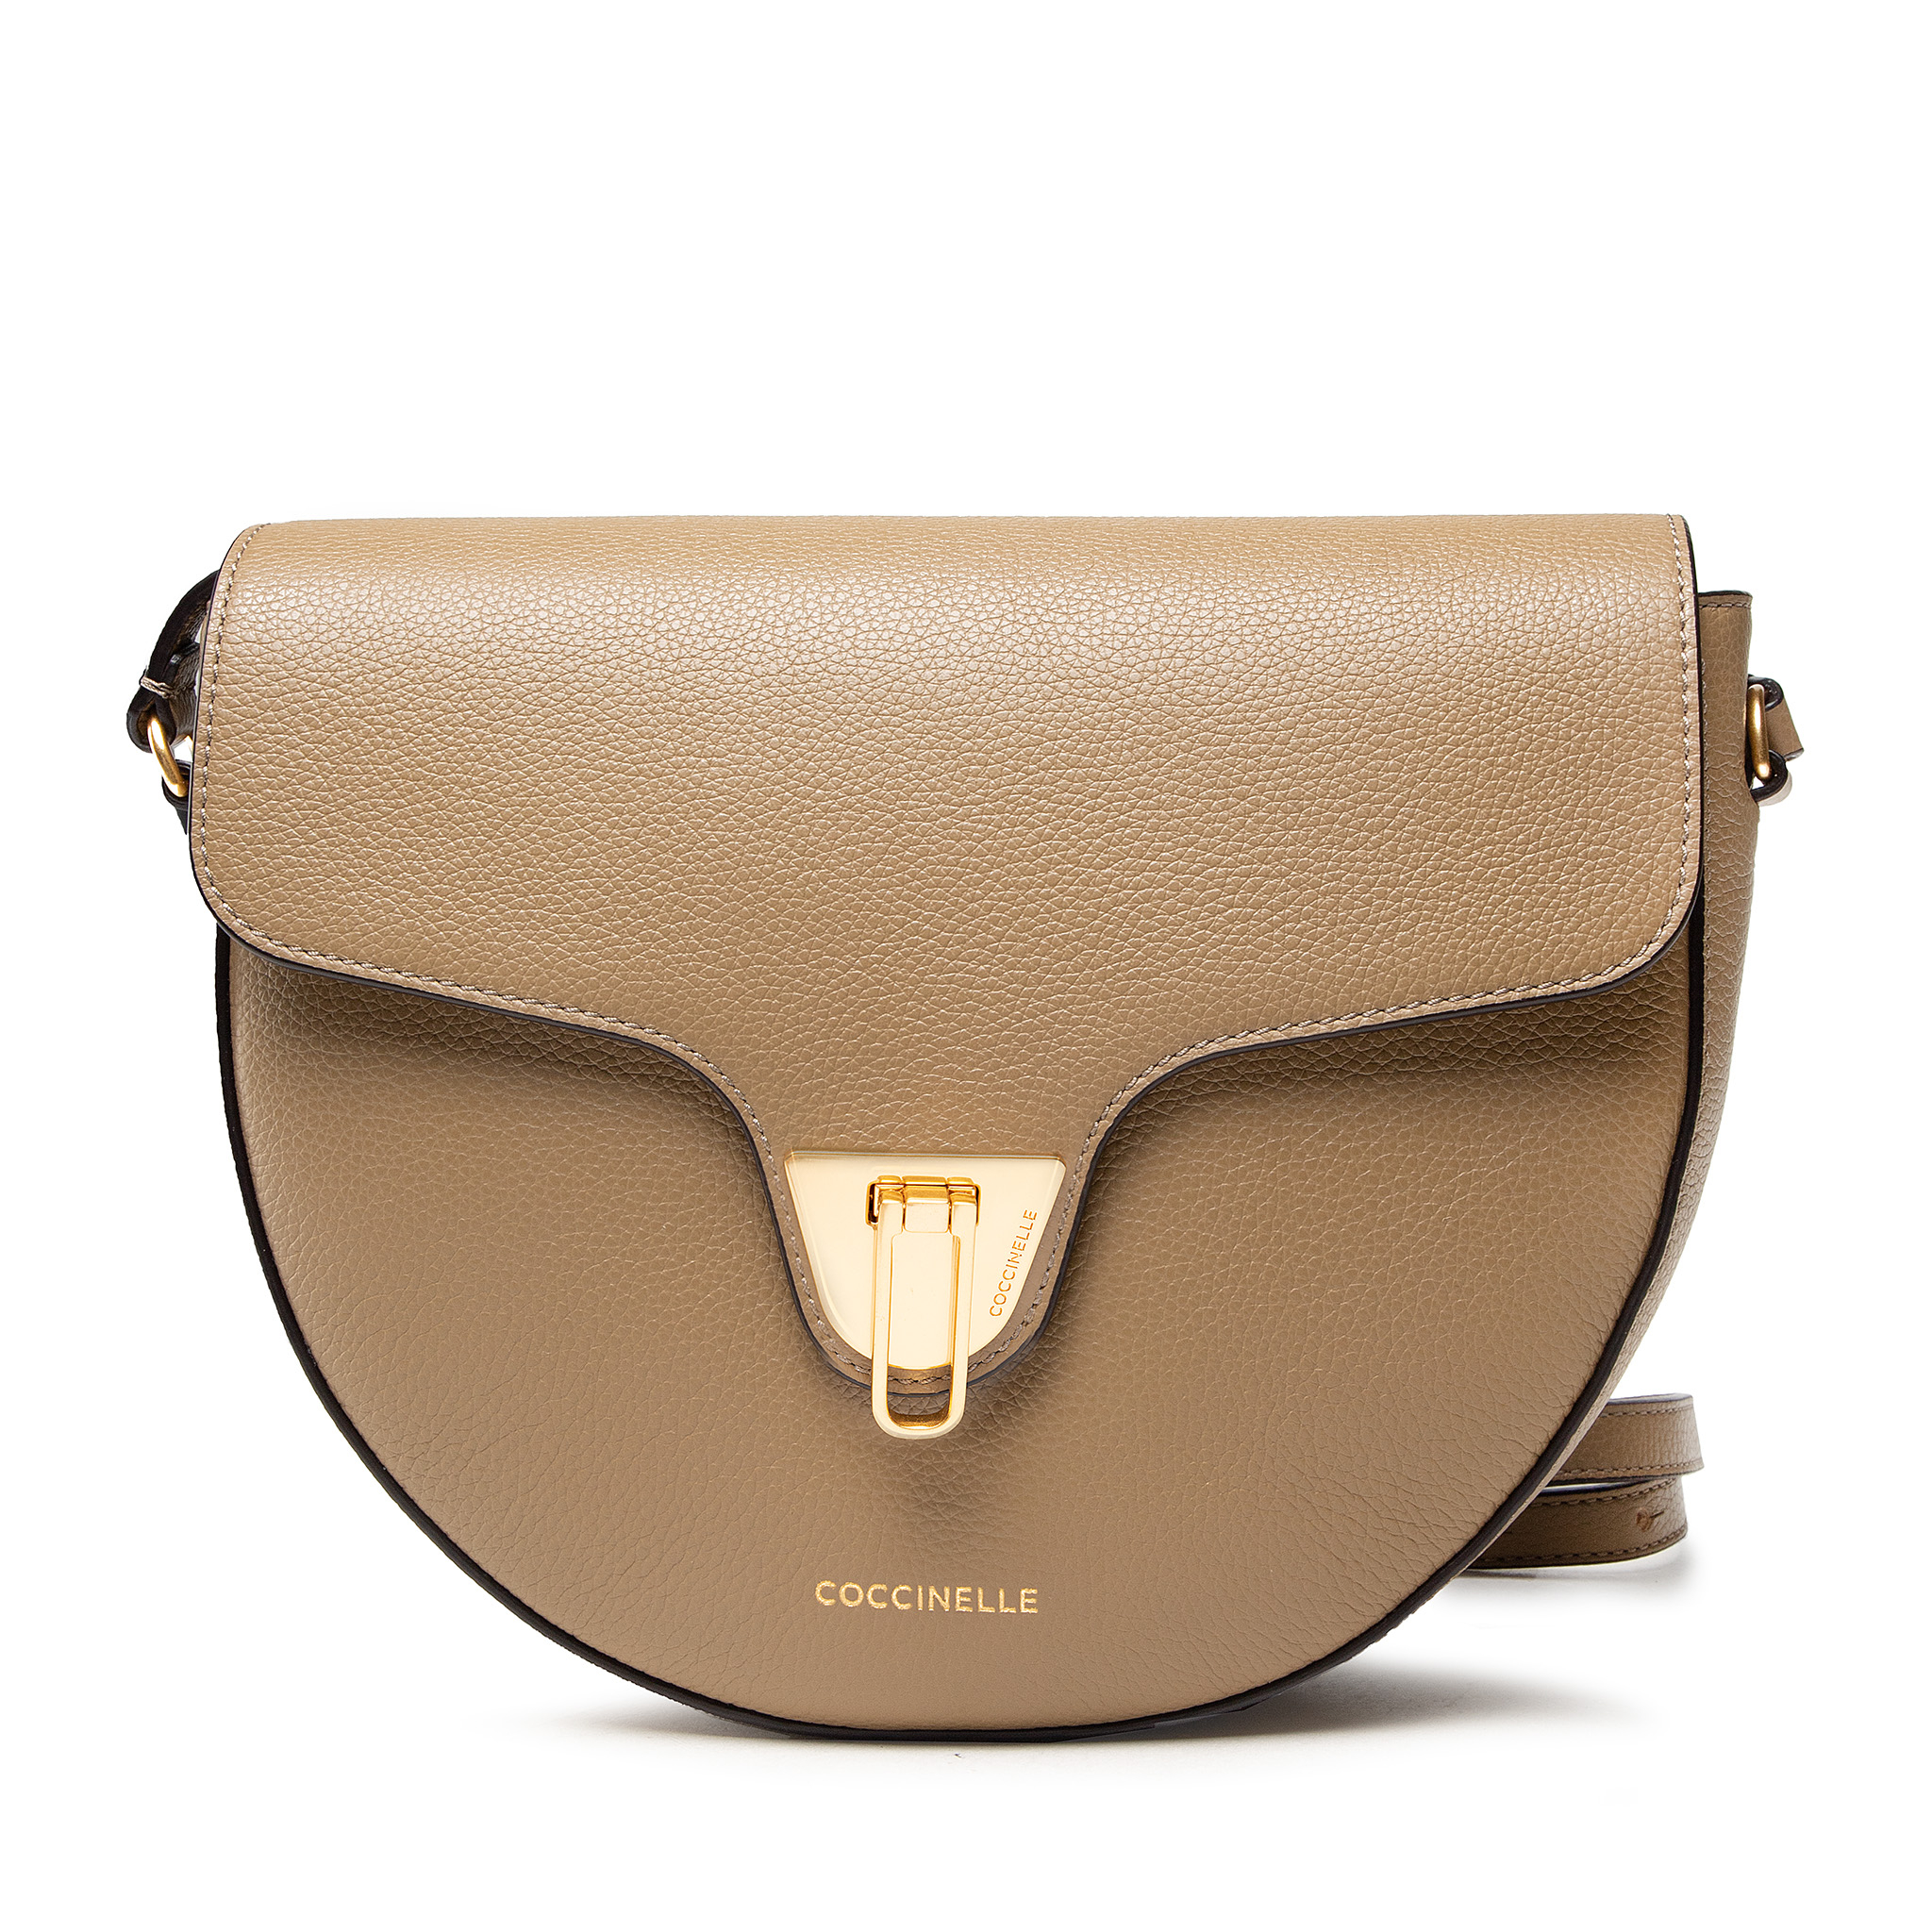 Coccinelle IF6 Beat Soft E1 IF6 15 01 01 Taupe N75